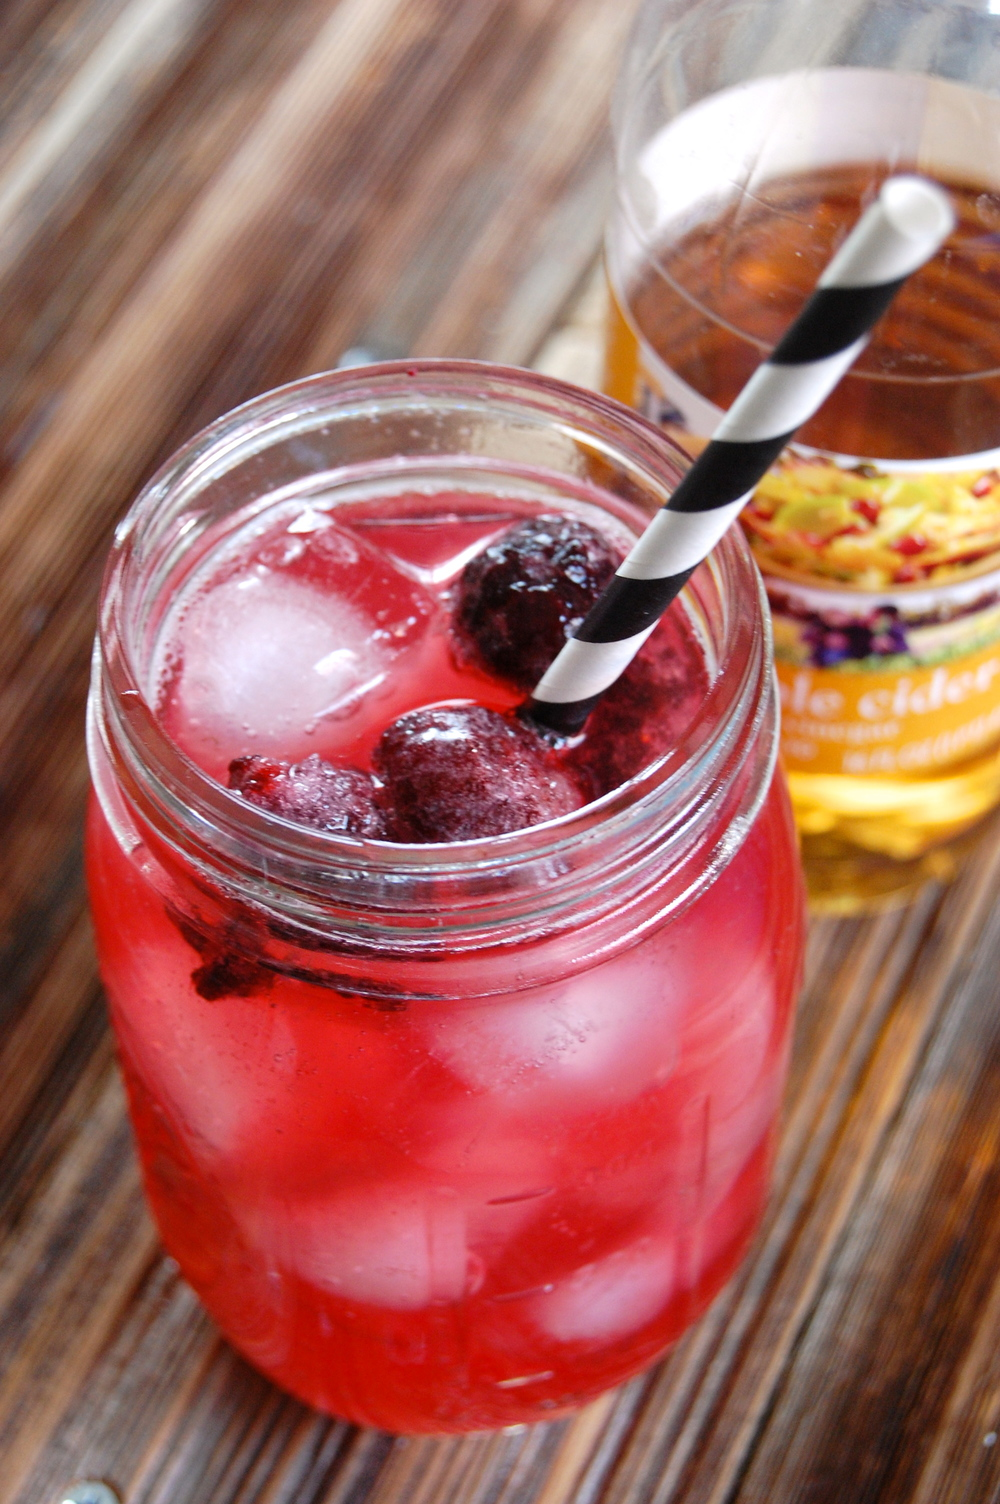 Blackberry-Honey-Drinking-Vinegar.jpg